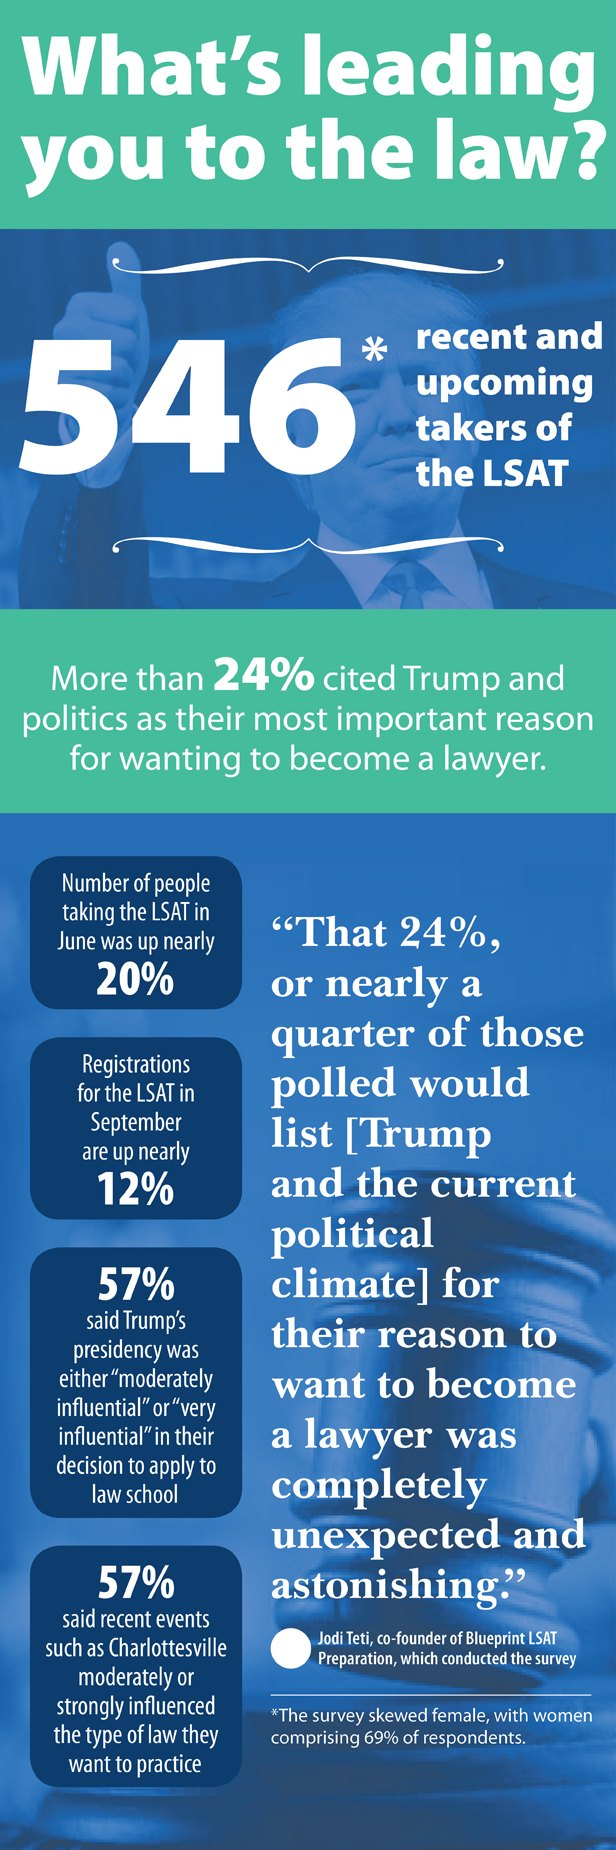 Lsat takers cite trump presidency as reason to become a lawyer law contact karen sloan at ksloanalm on twitter karensloannlj malvernweather Image collections